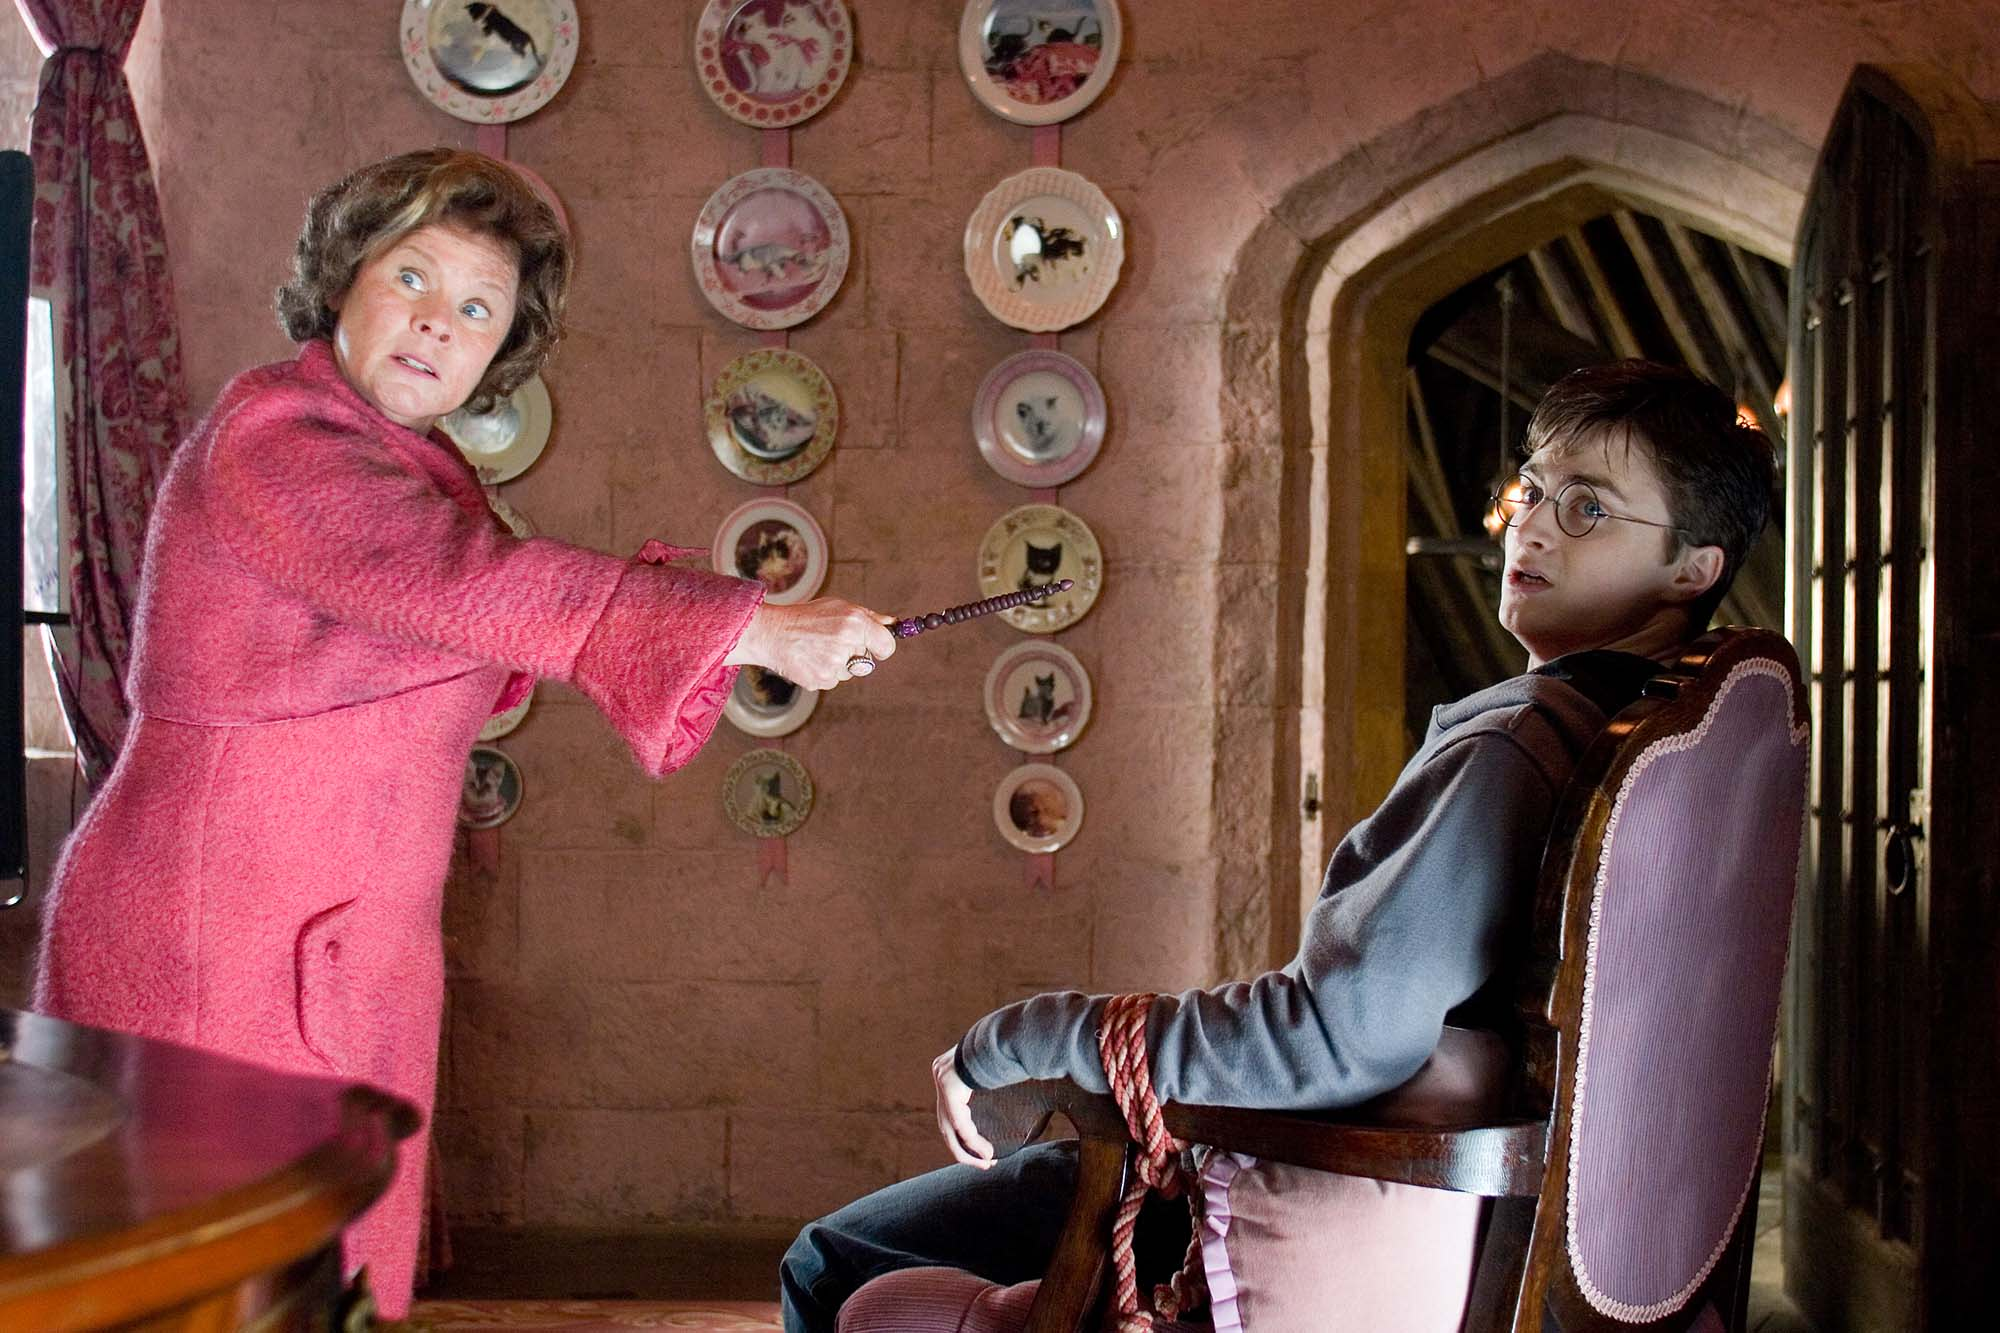 WB-F5-order-of-the-phoenix-umbridge-and-harry-with-cat-plates